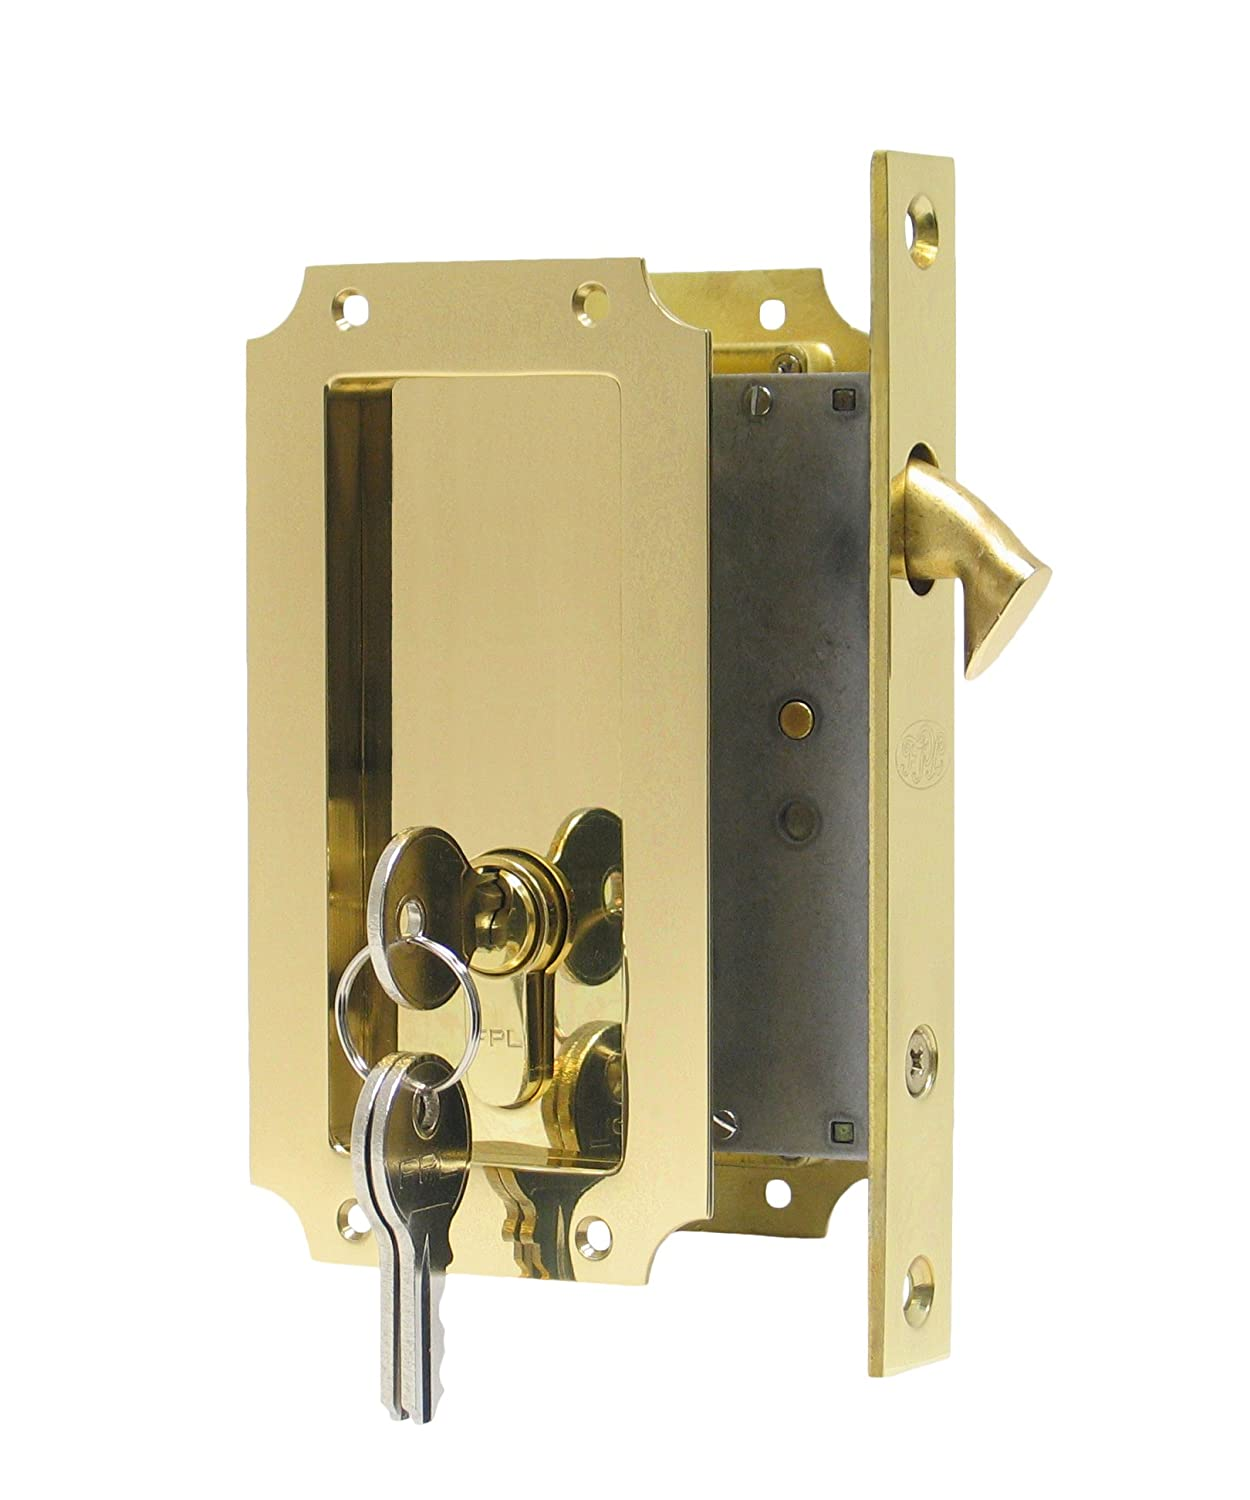 Merveilleux Manor By FPL  Solid Brass Pocket Door Mortise Lock Set With Double Keyed  Euro Profile Cylinder   Antique Brass   Pocket Door Hardware   Amazon.com